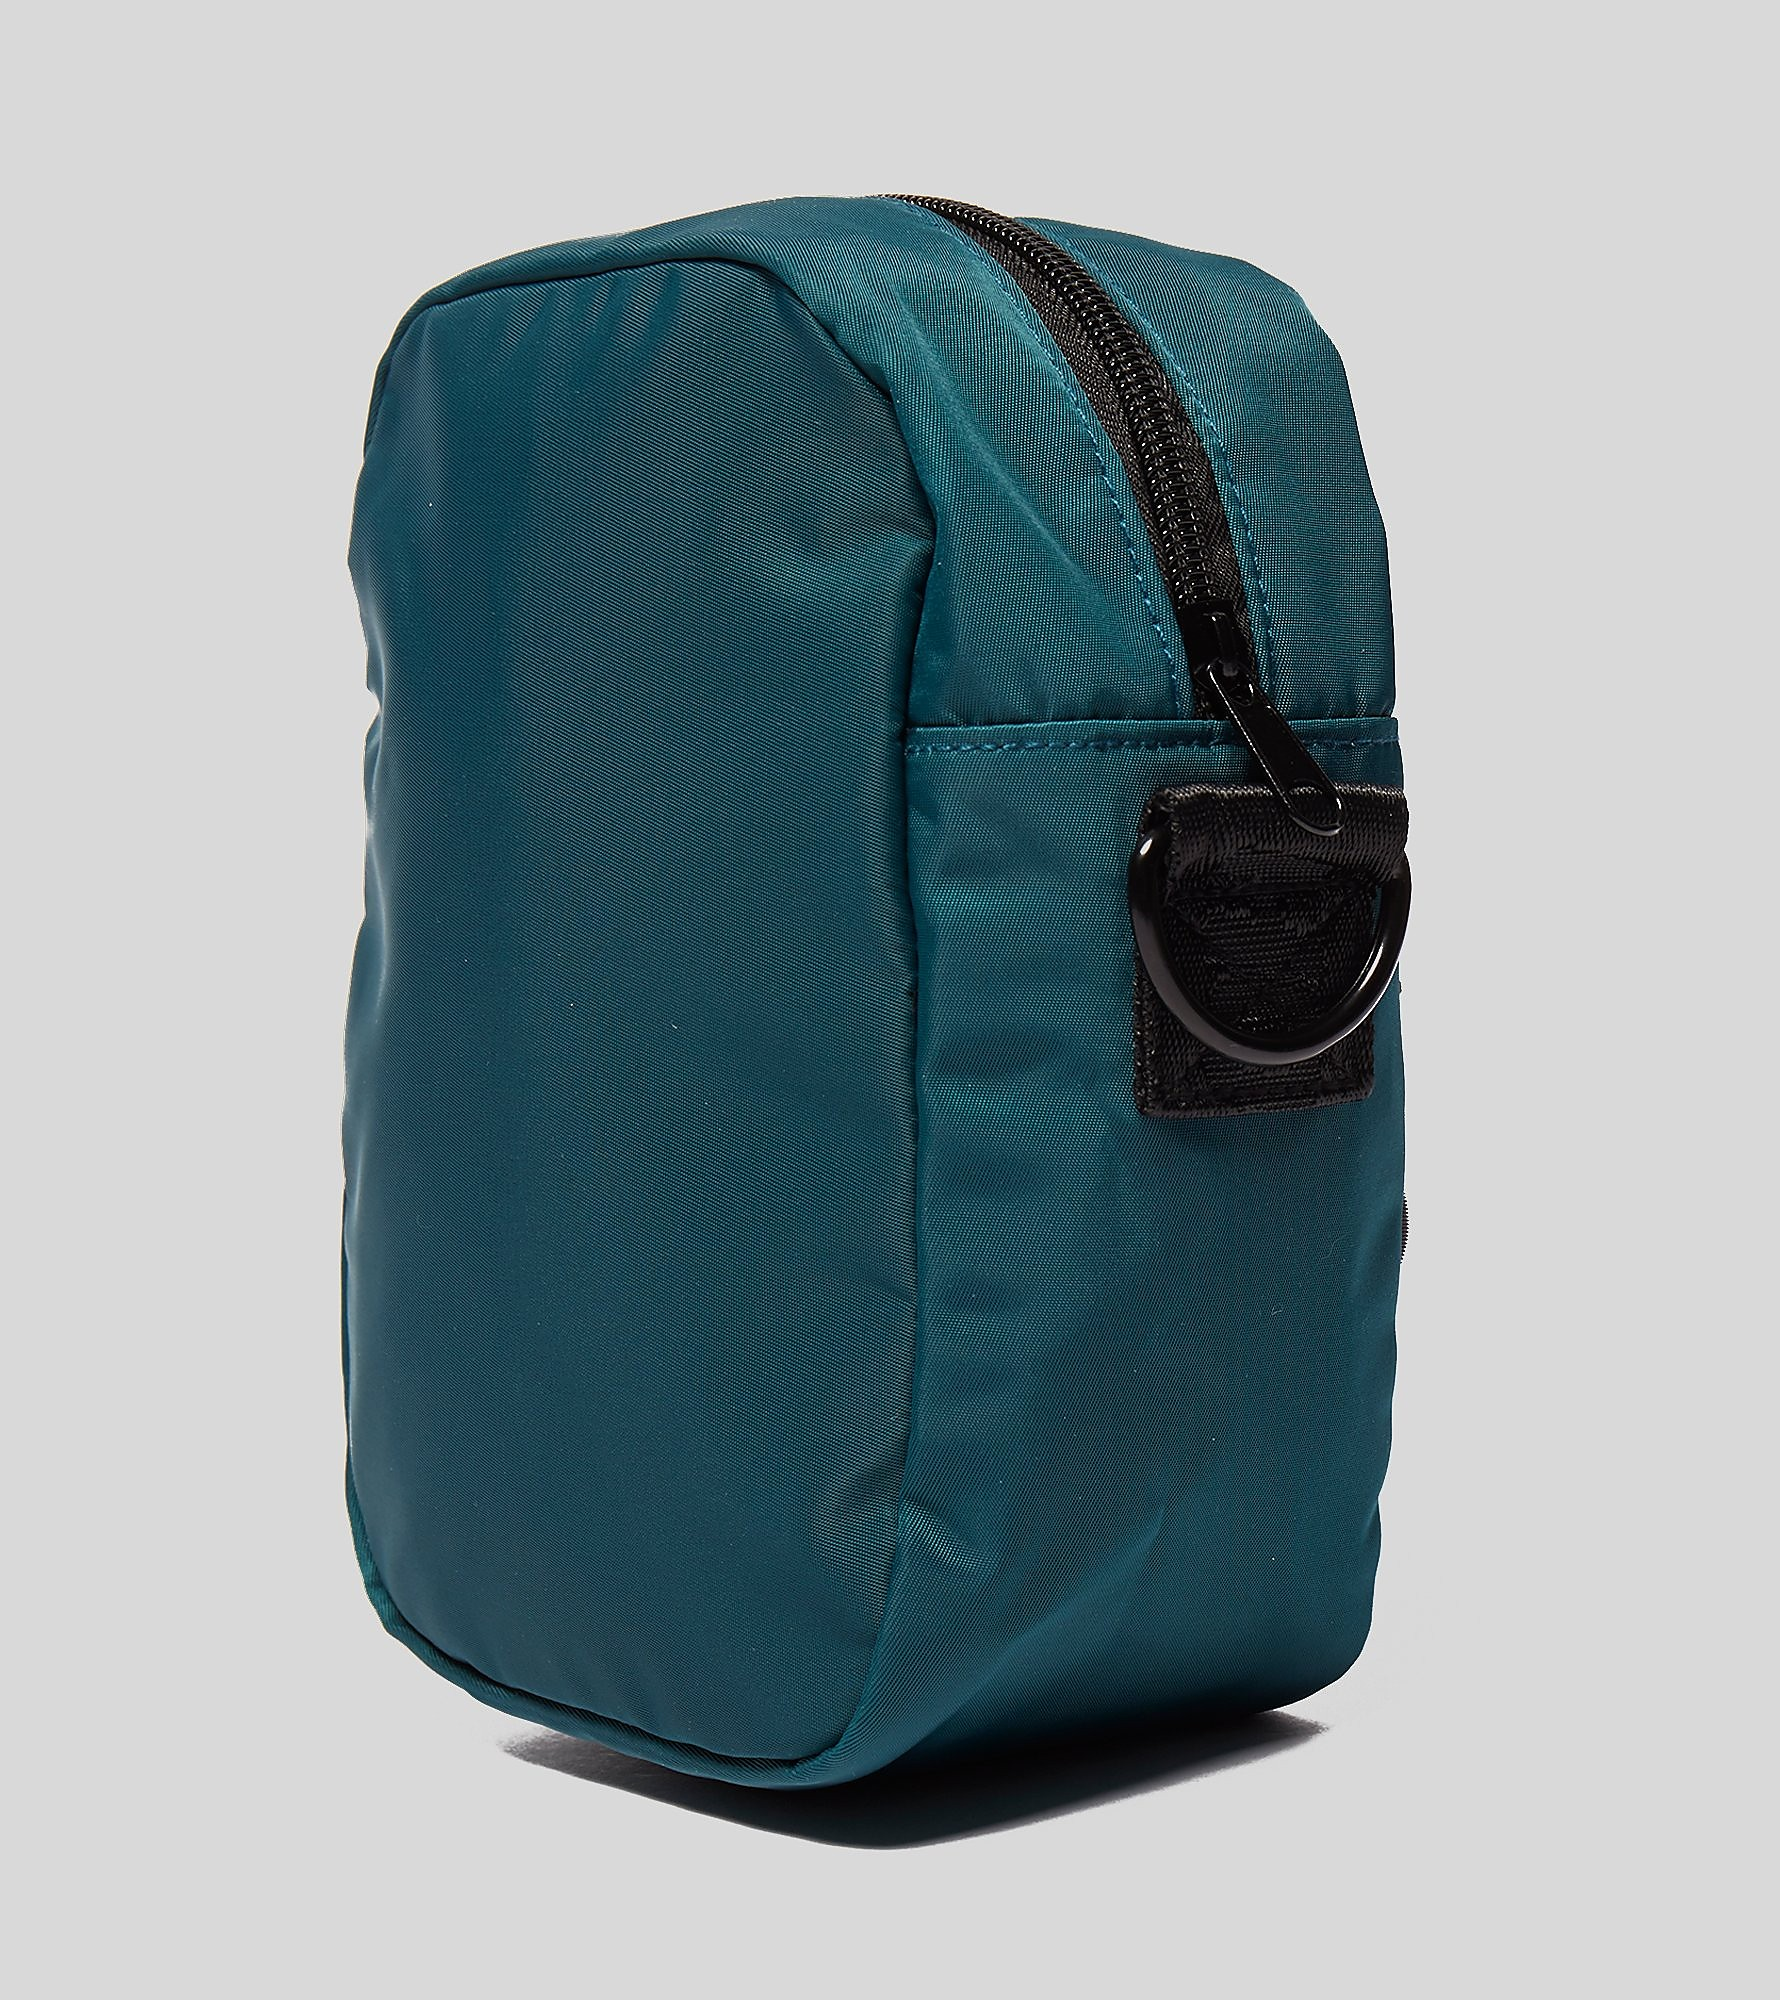 Hoodlab Shoulder Bag